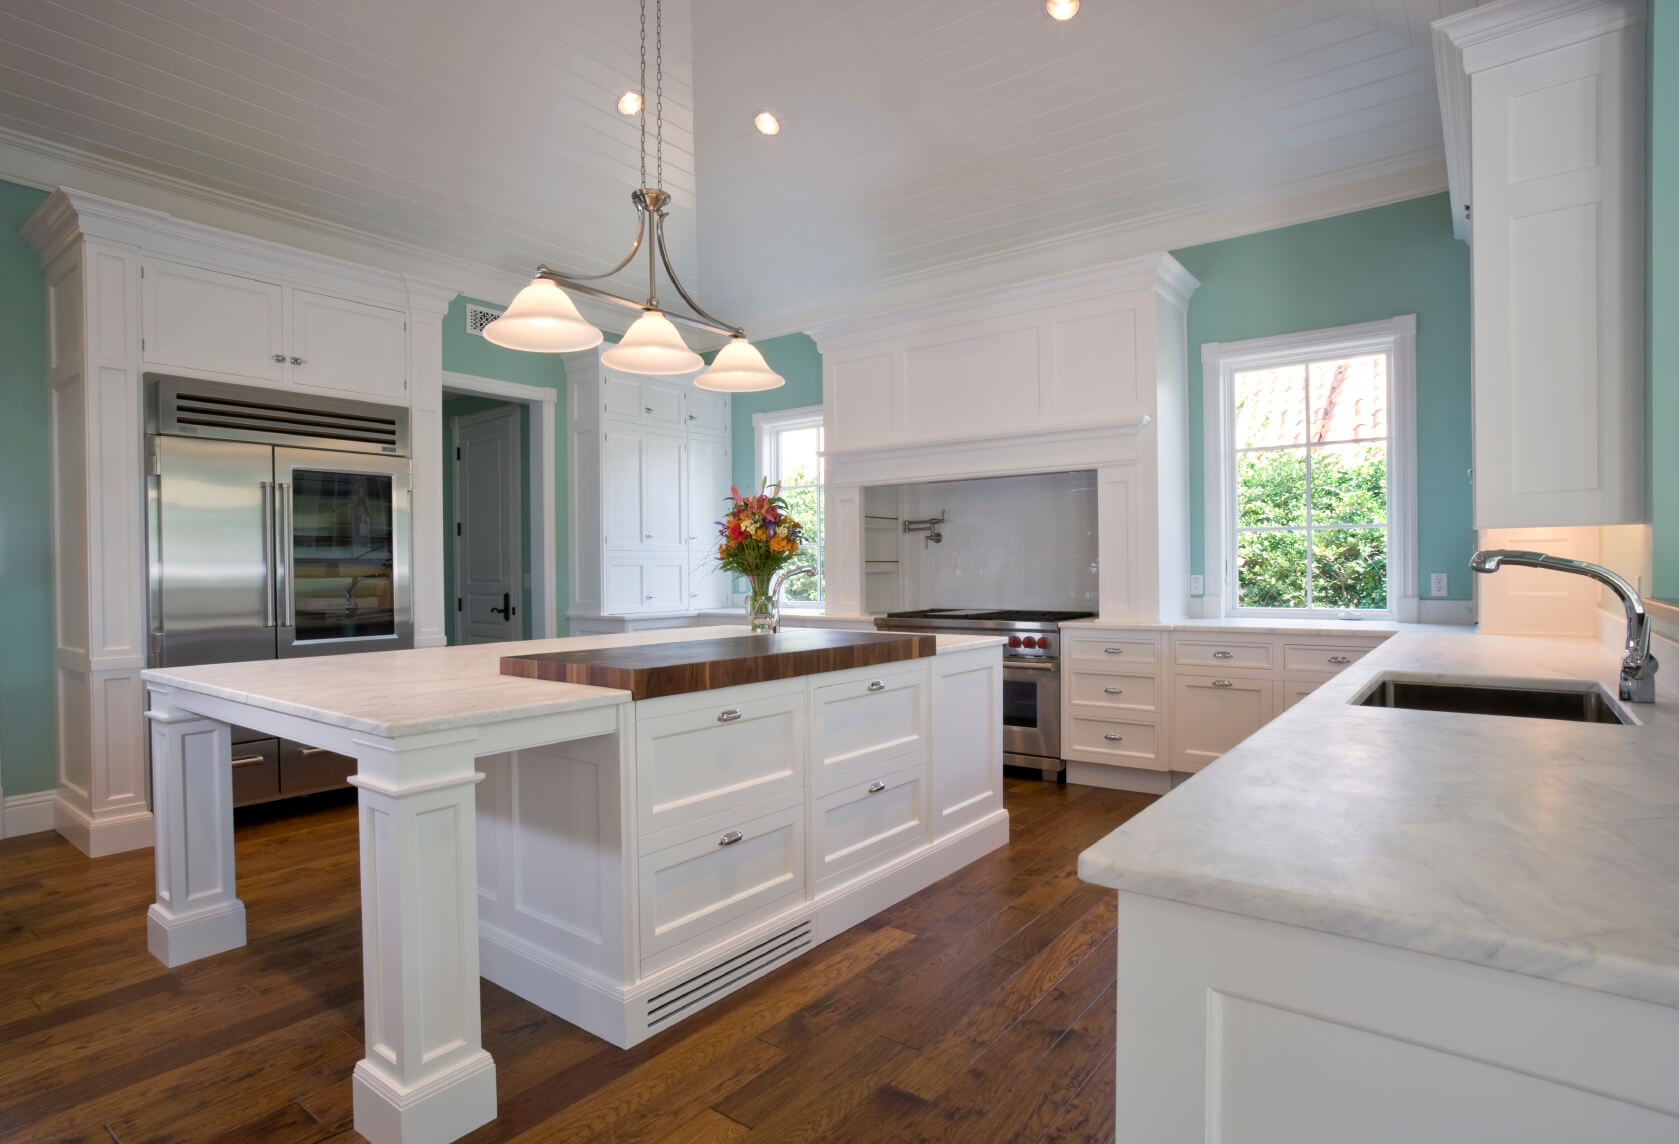 white kitchen designs pictures kitchen countertop tile Light mint blue paint adds burst of color to this all white kitchen over natural